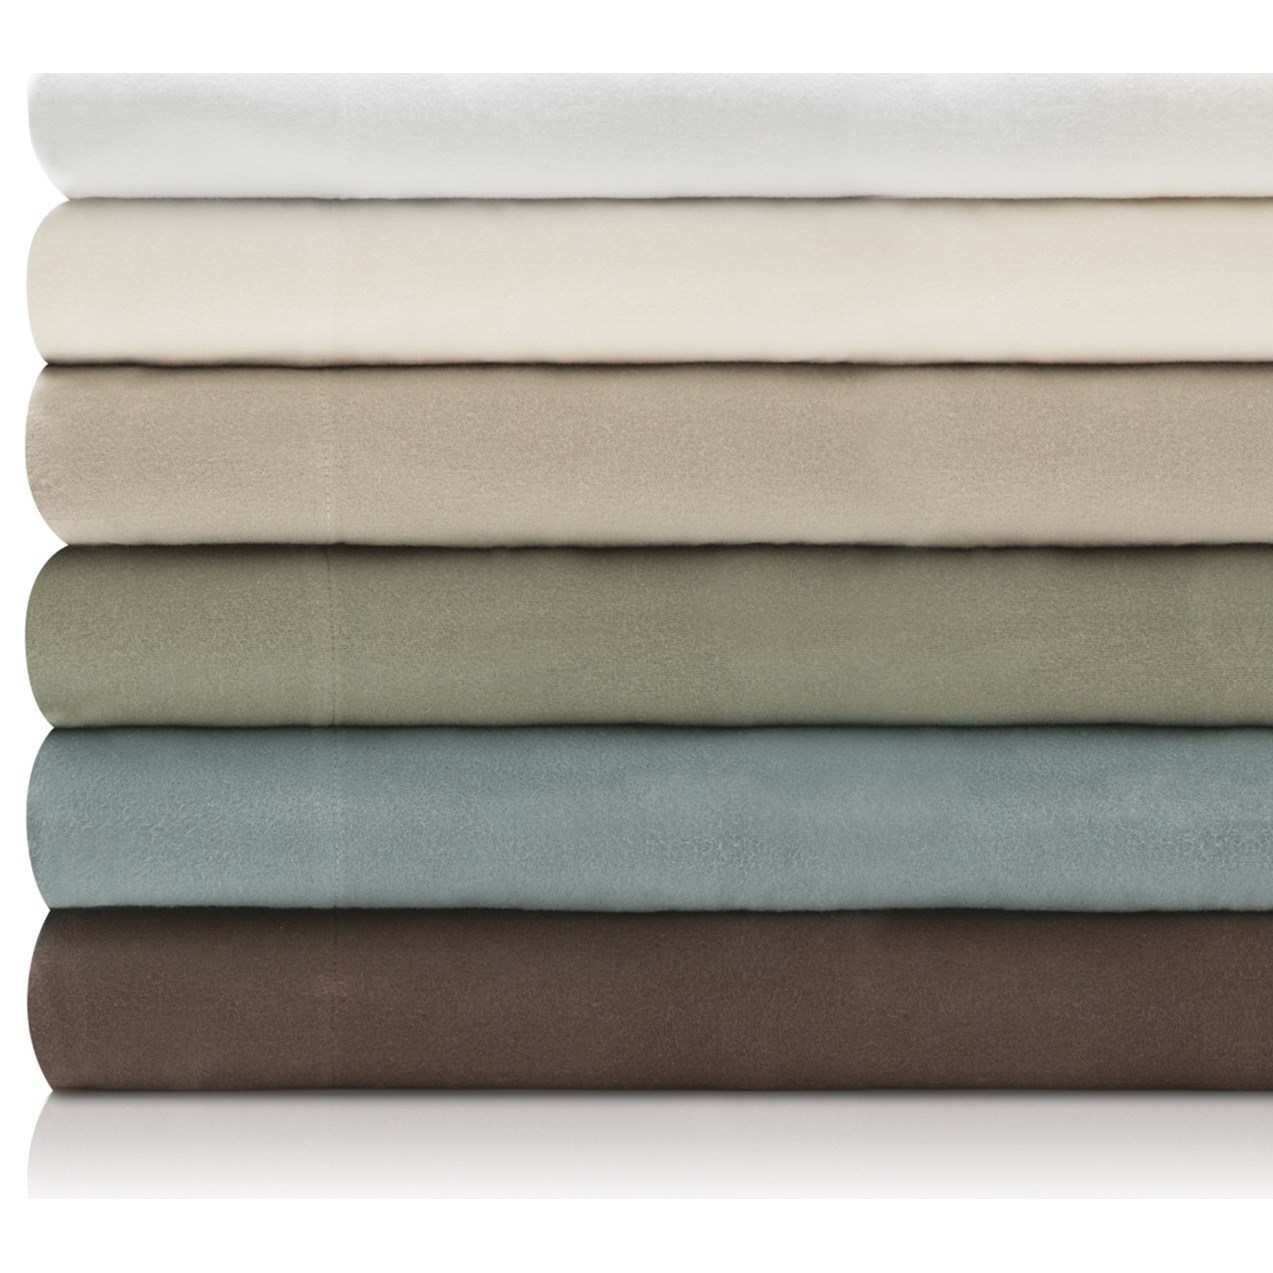 Malouf Portuguese Flannel Full XL Woven™ Portuguese Flannel Sheet Set - Item Number: WO19FXWHFS